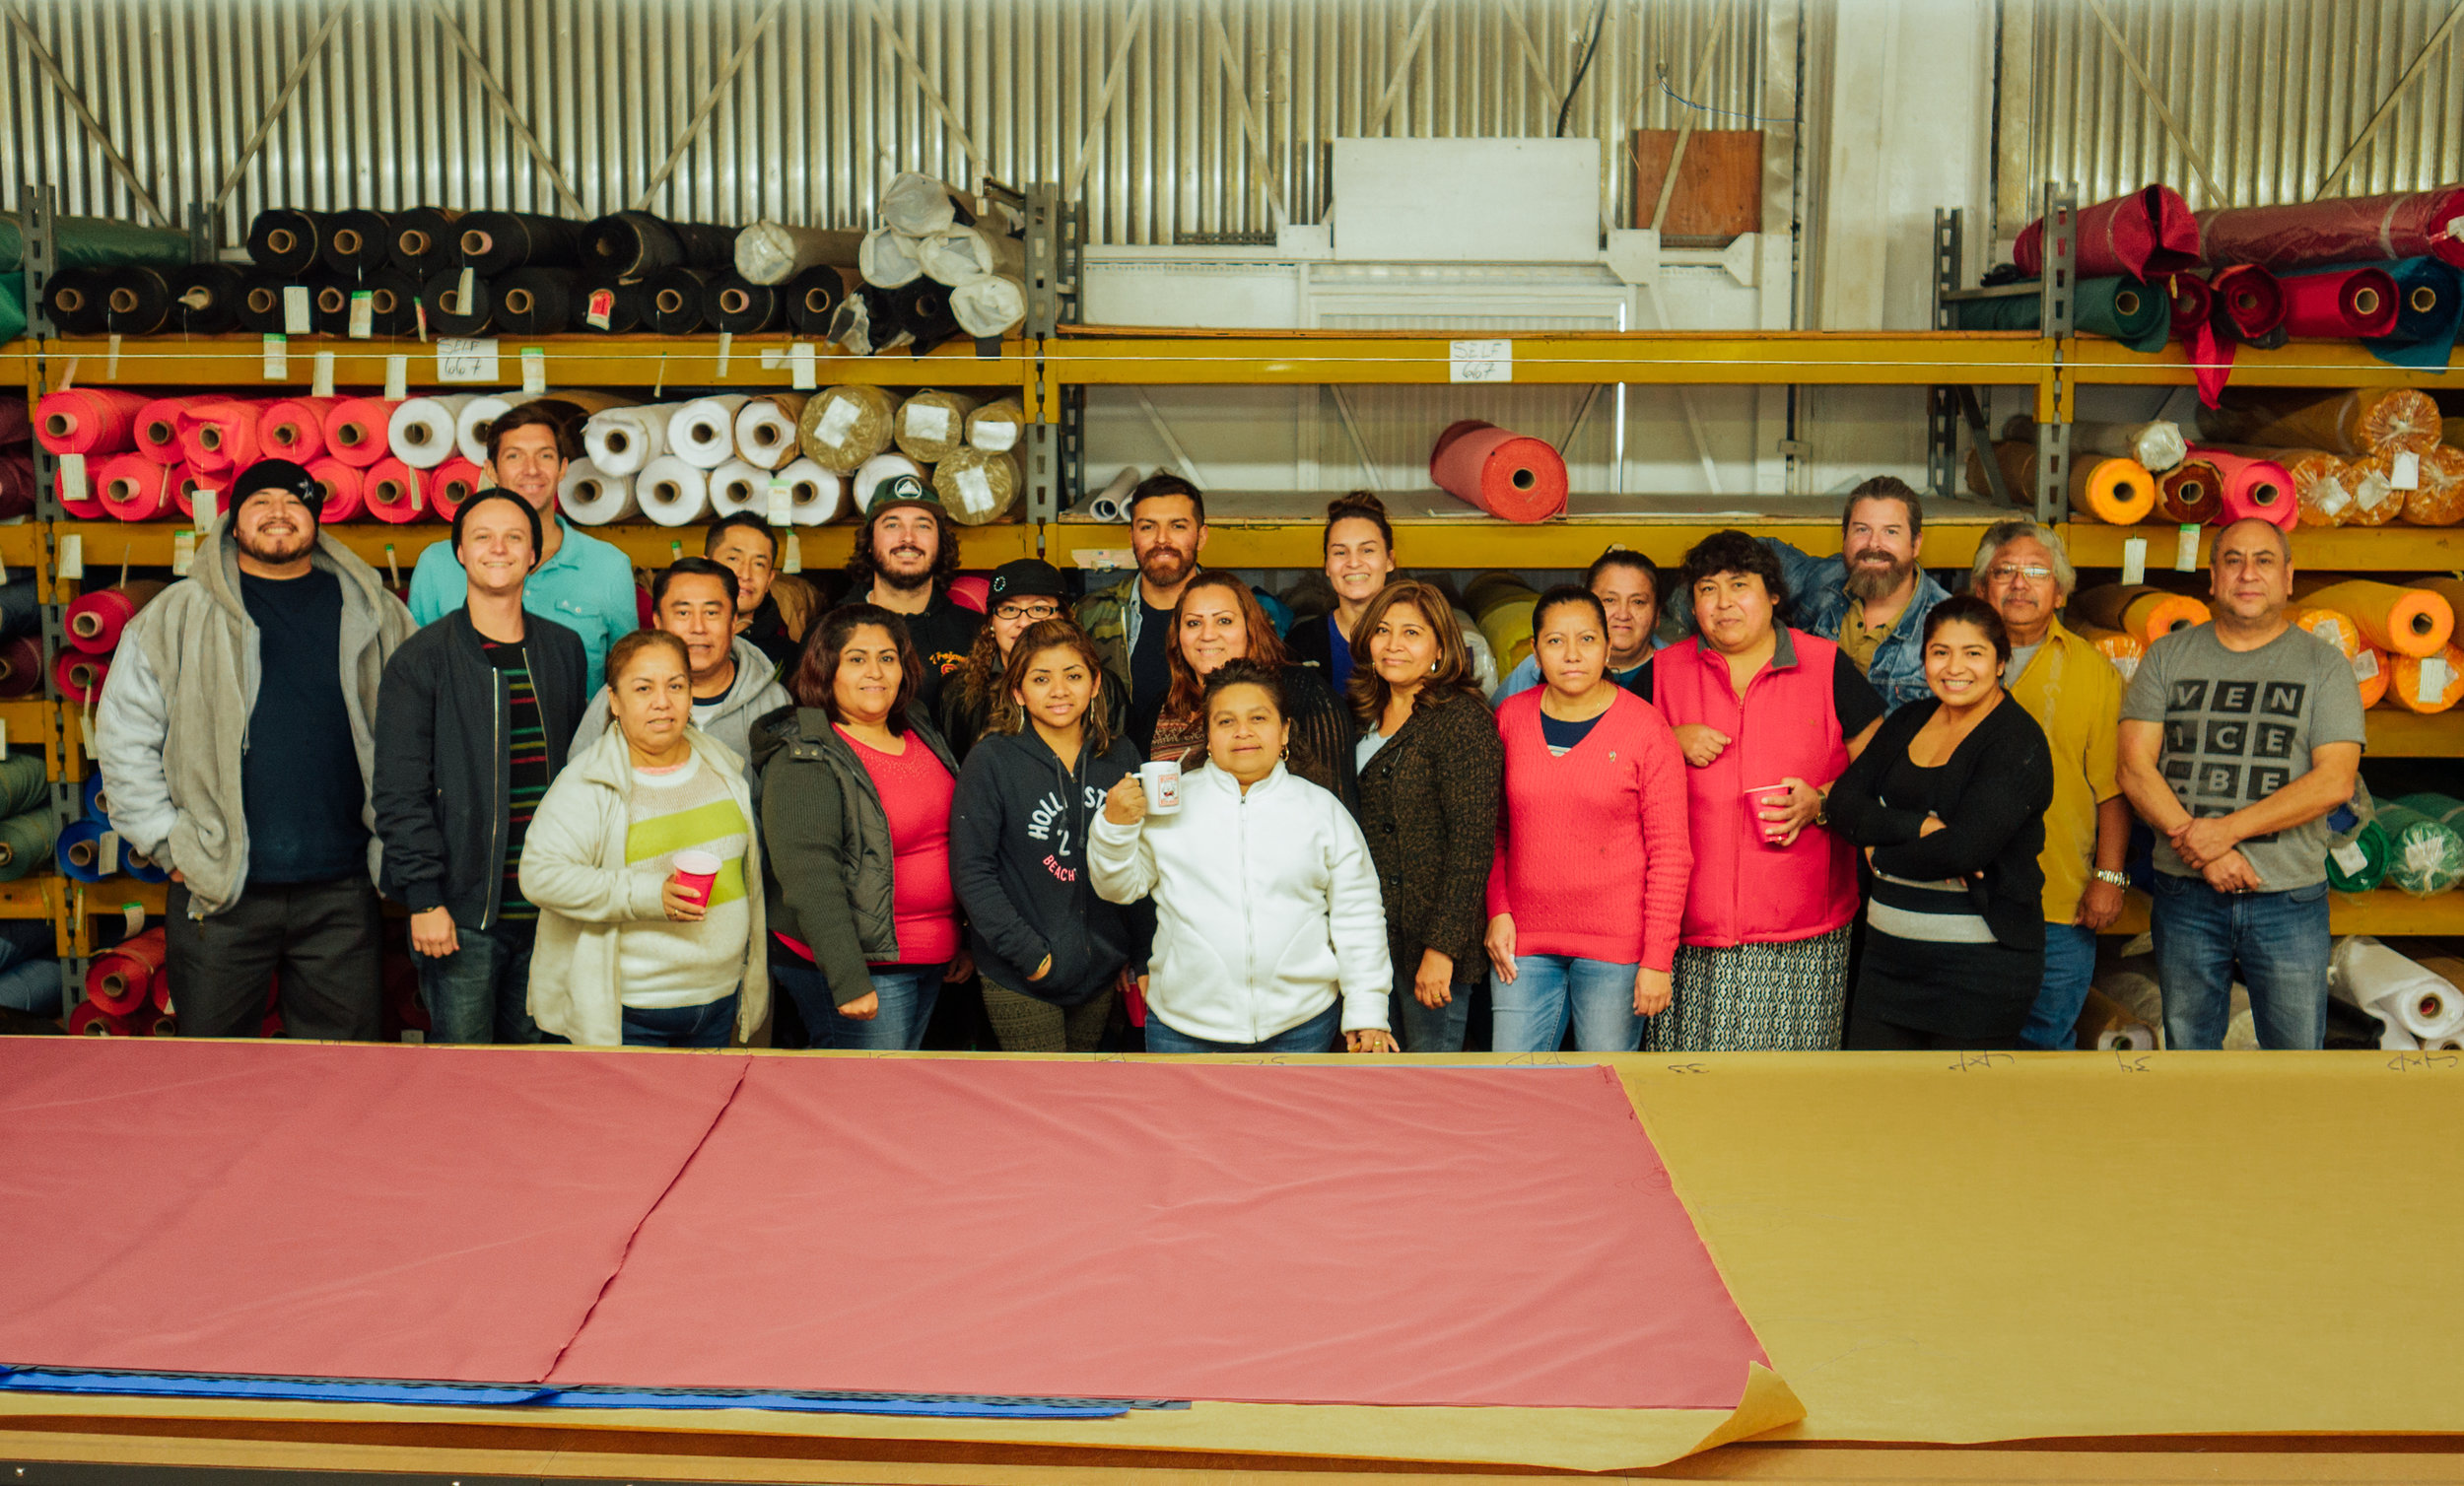 Many members of the Birdwell sewing team have been with the company for decades